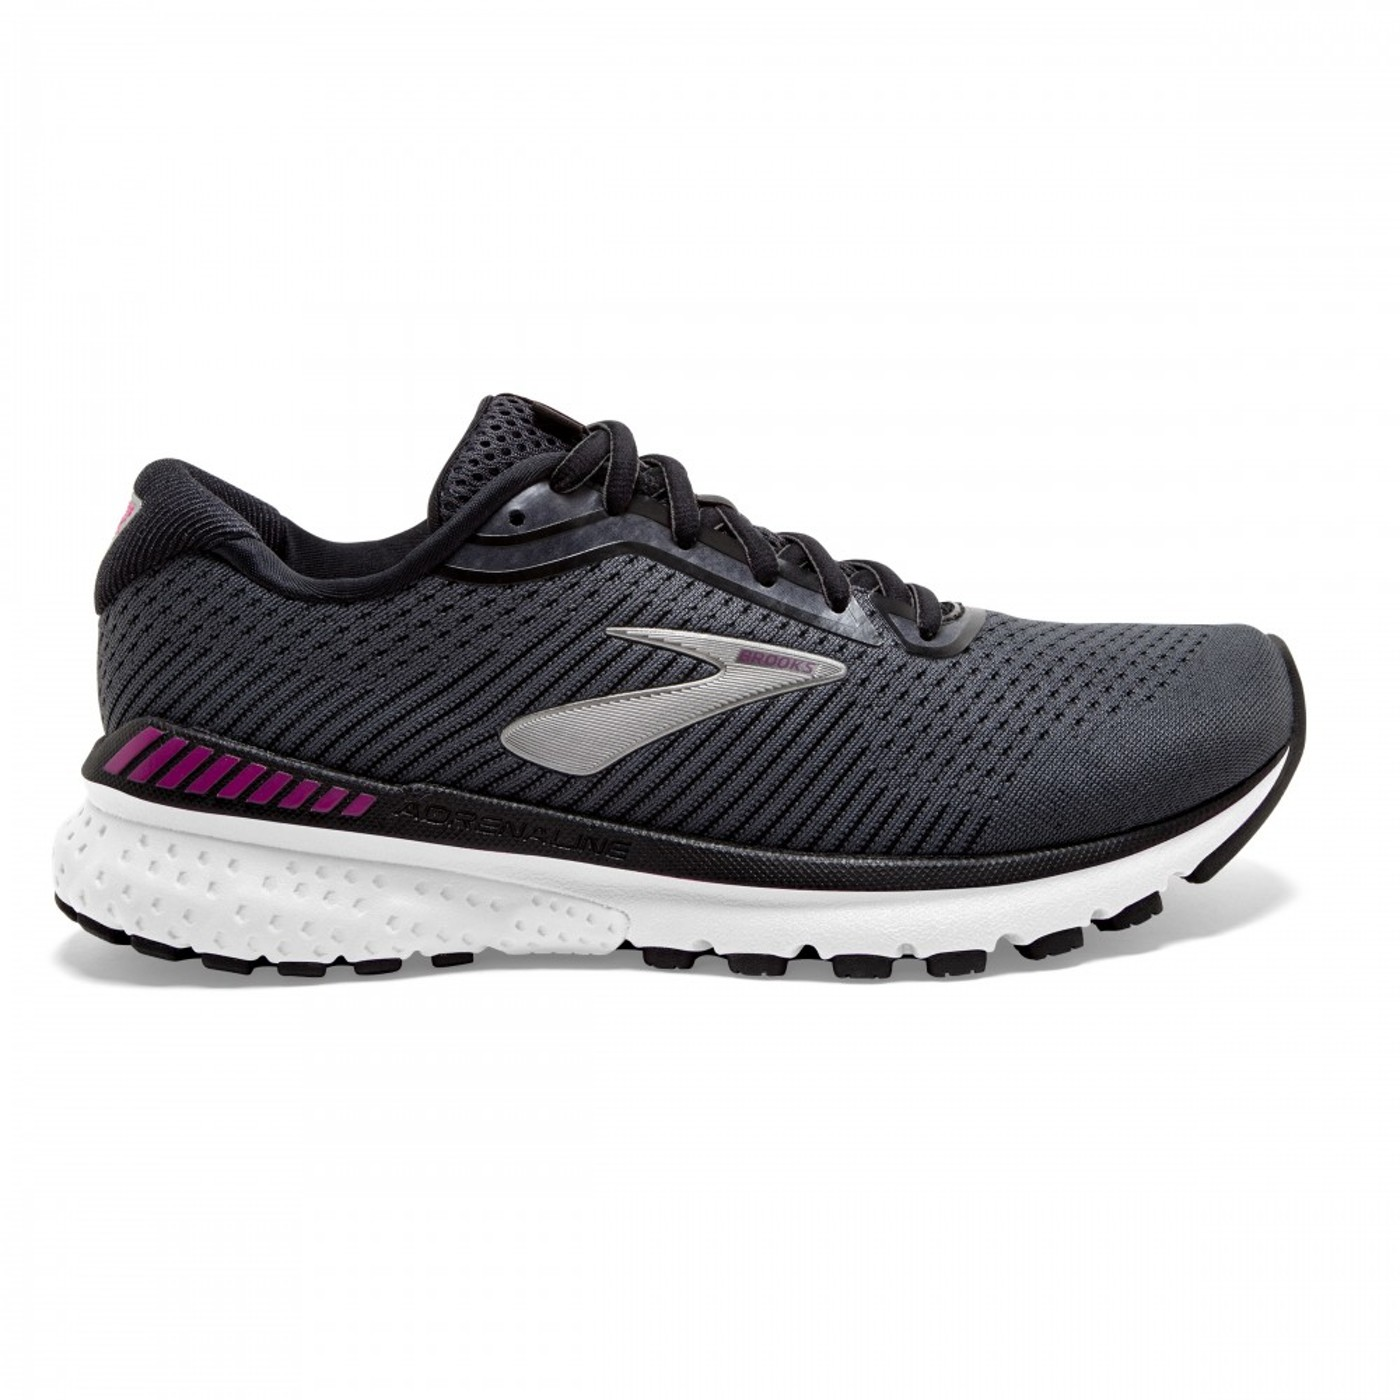 BROOKS Adrenaline GTS 20 - Damen